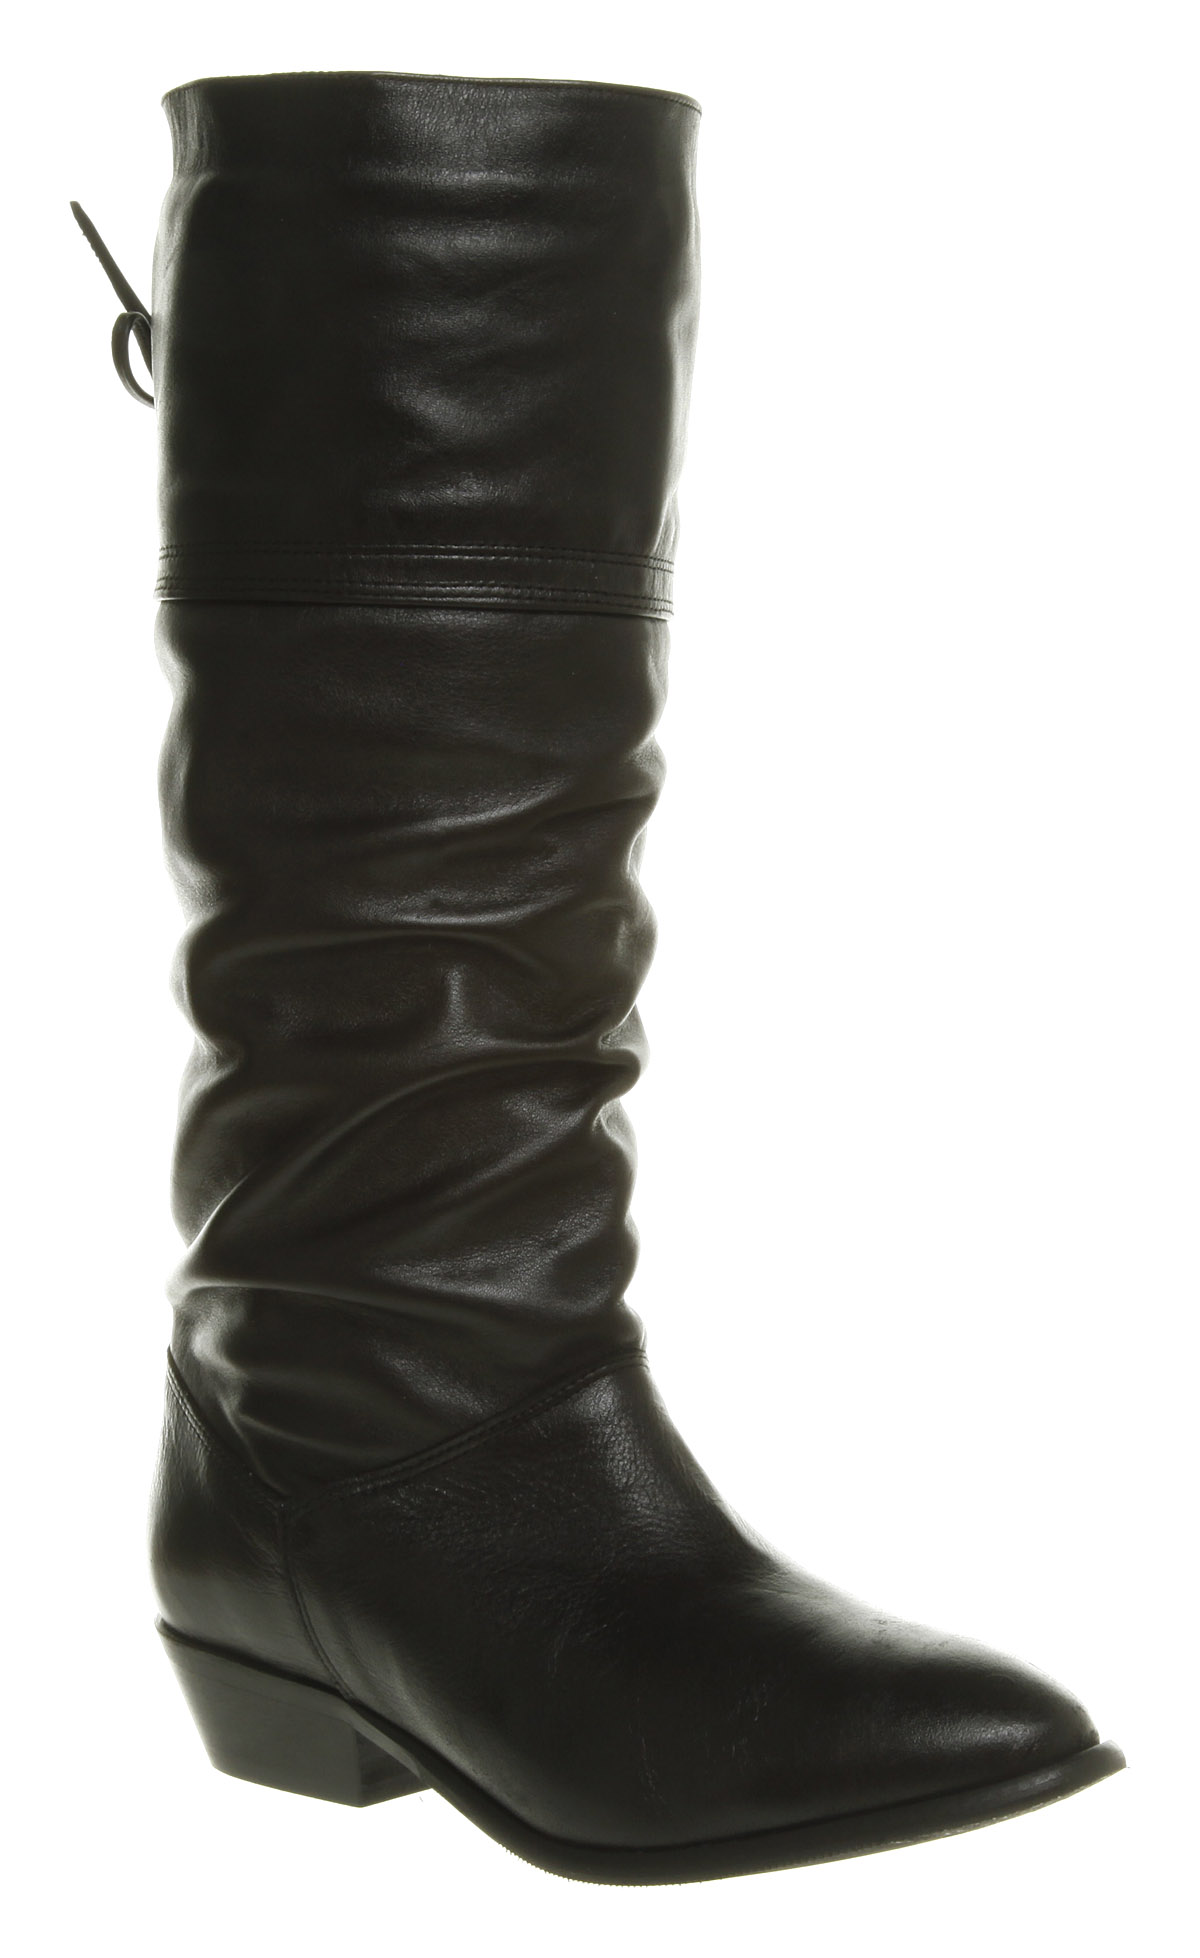 Womens Office Jani Slouch Boot Black Leather Boots | eBay